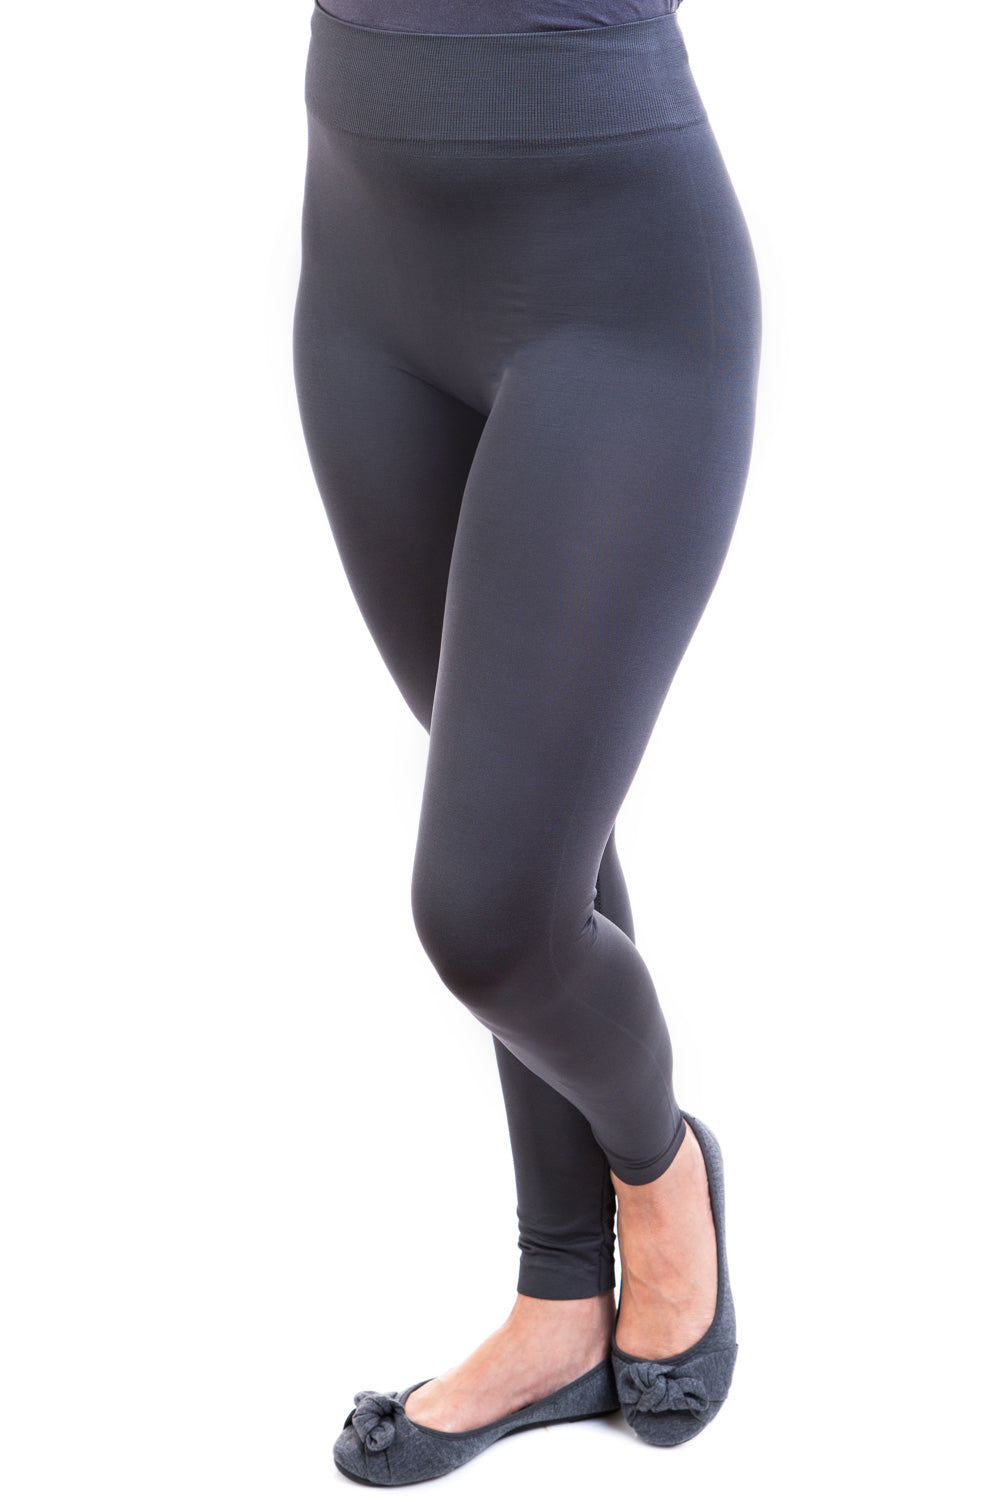 Type 2 PLUS Charcoal Leggings